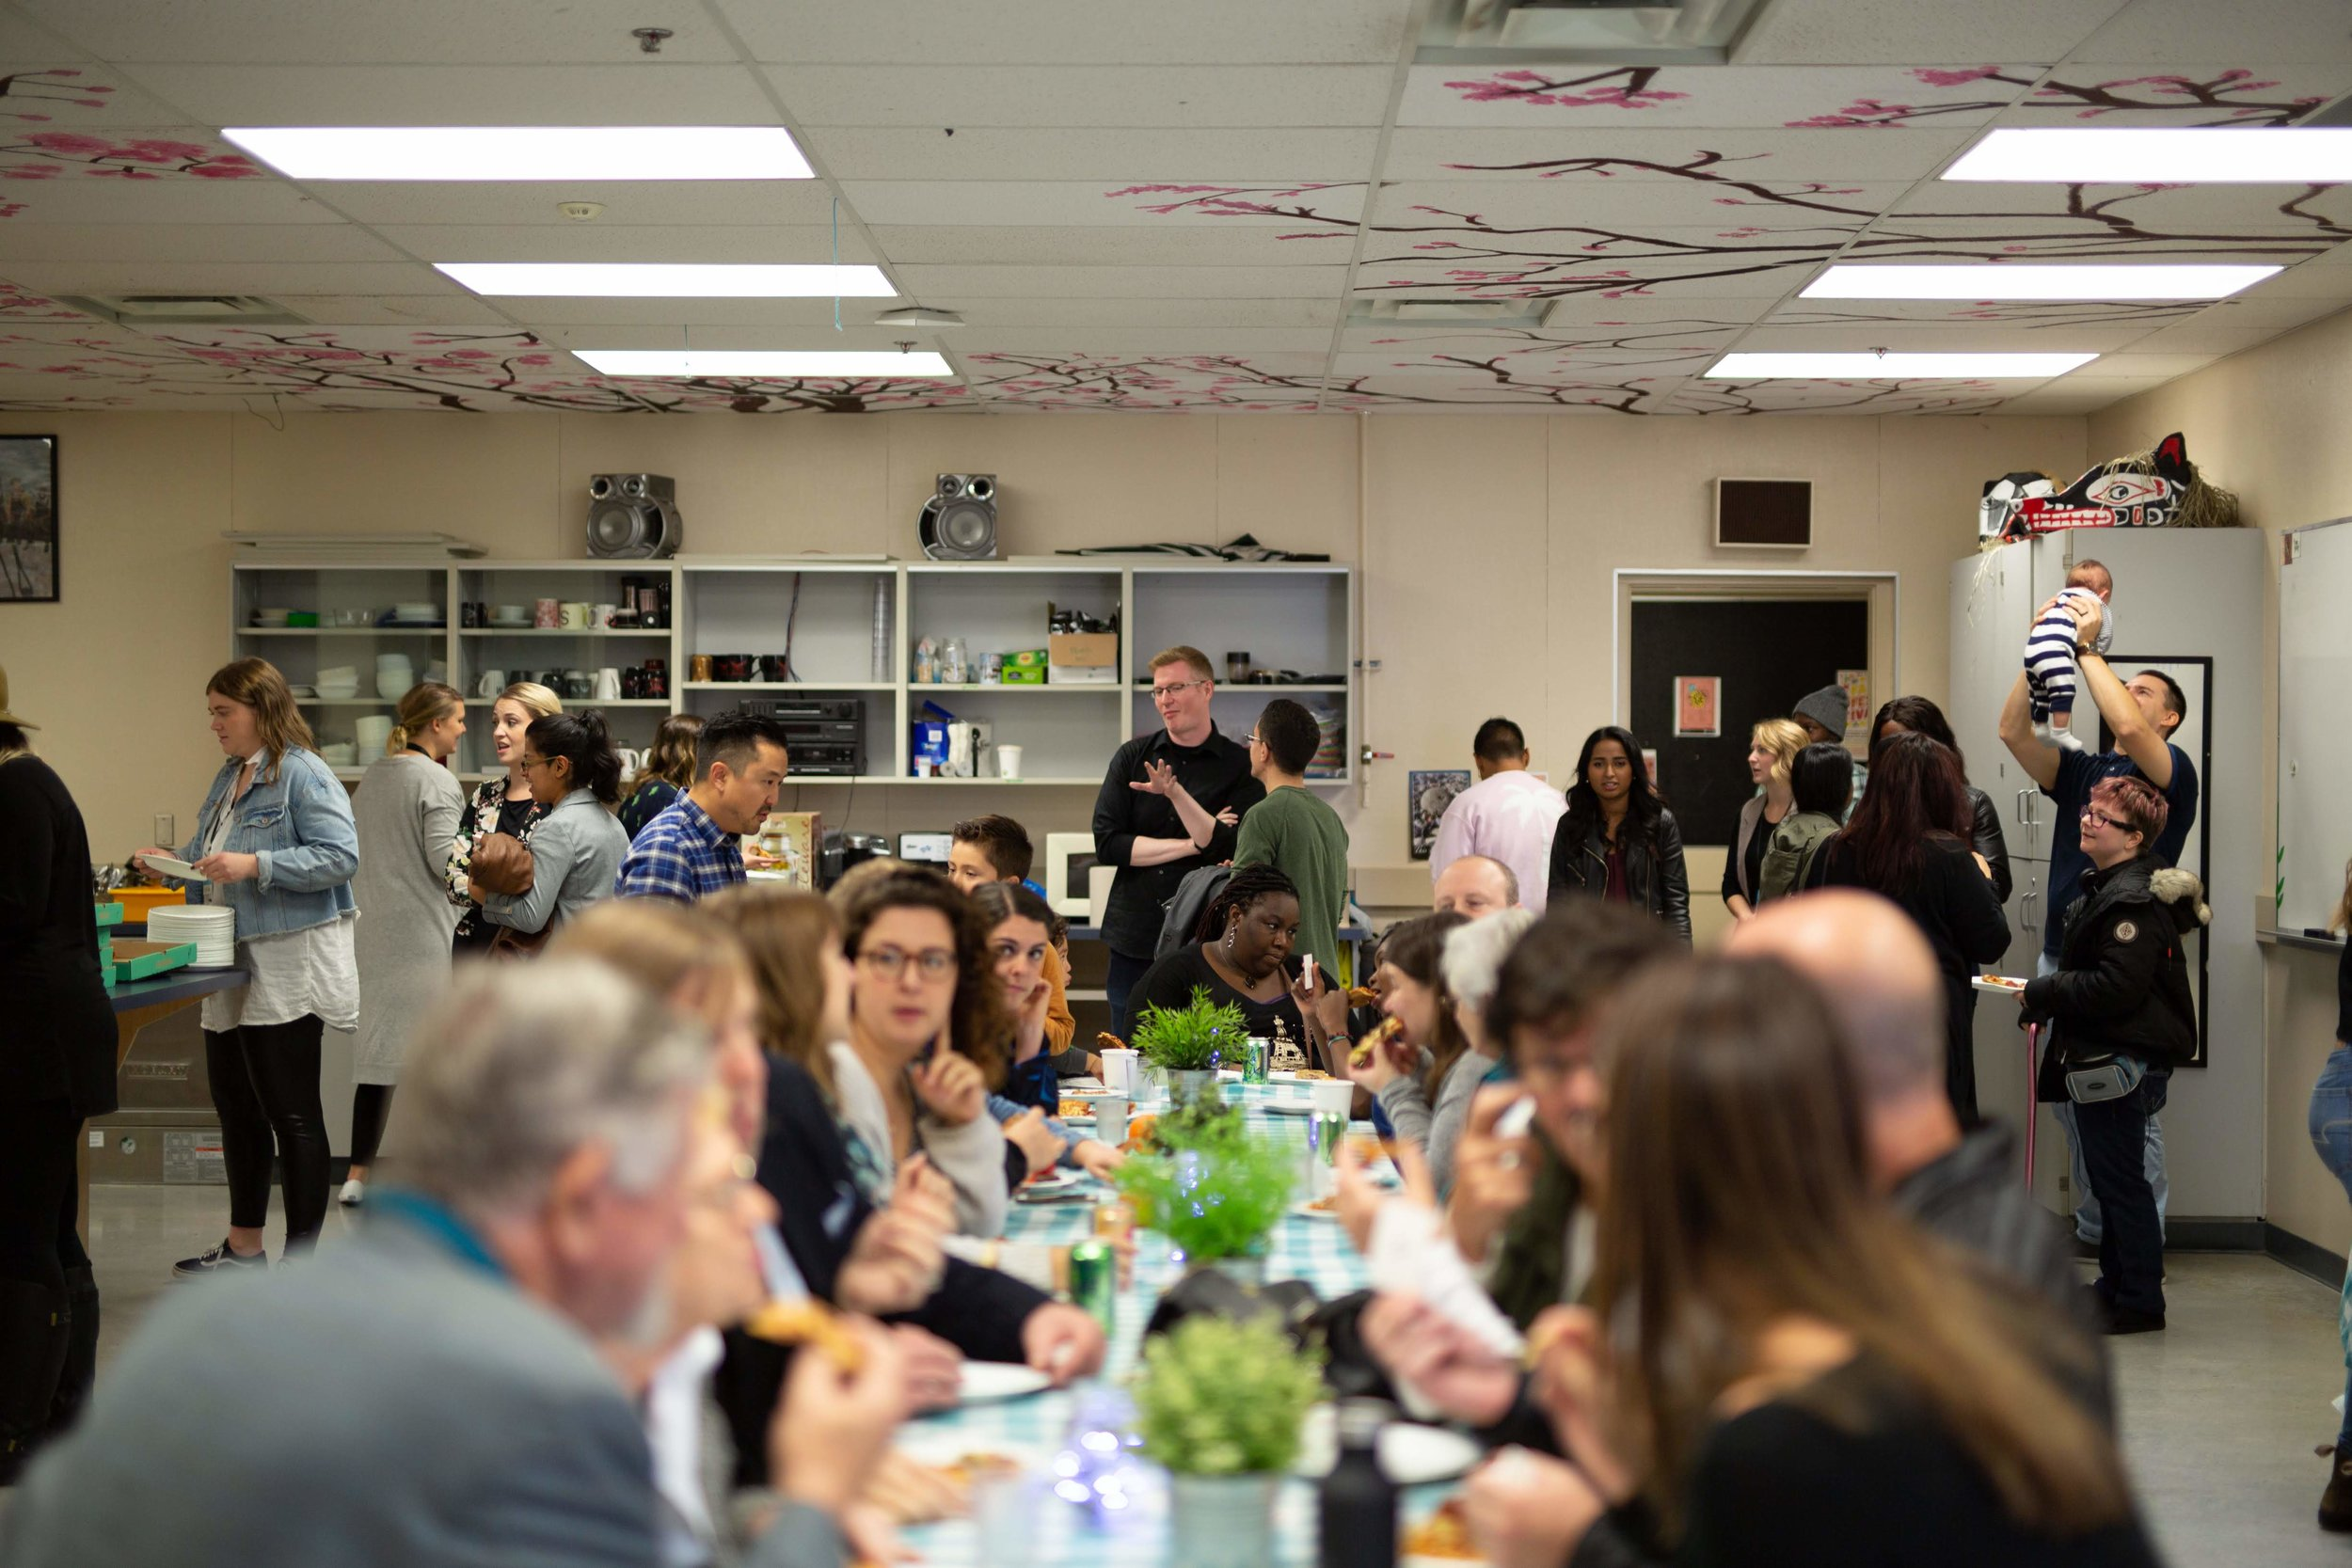 Foods Team  This team creates space at the table for people to connect. Whether that is through team breakfasts in the morning, Community Lunches after church, or Dinner Parties during the week, this team uses food to bring people together.